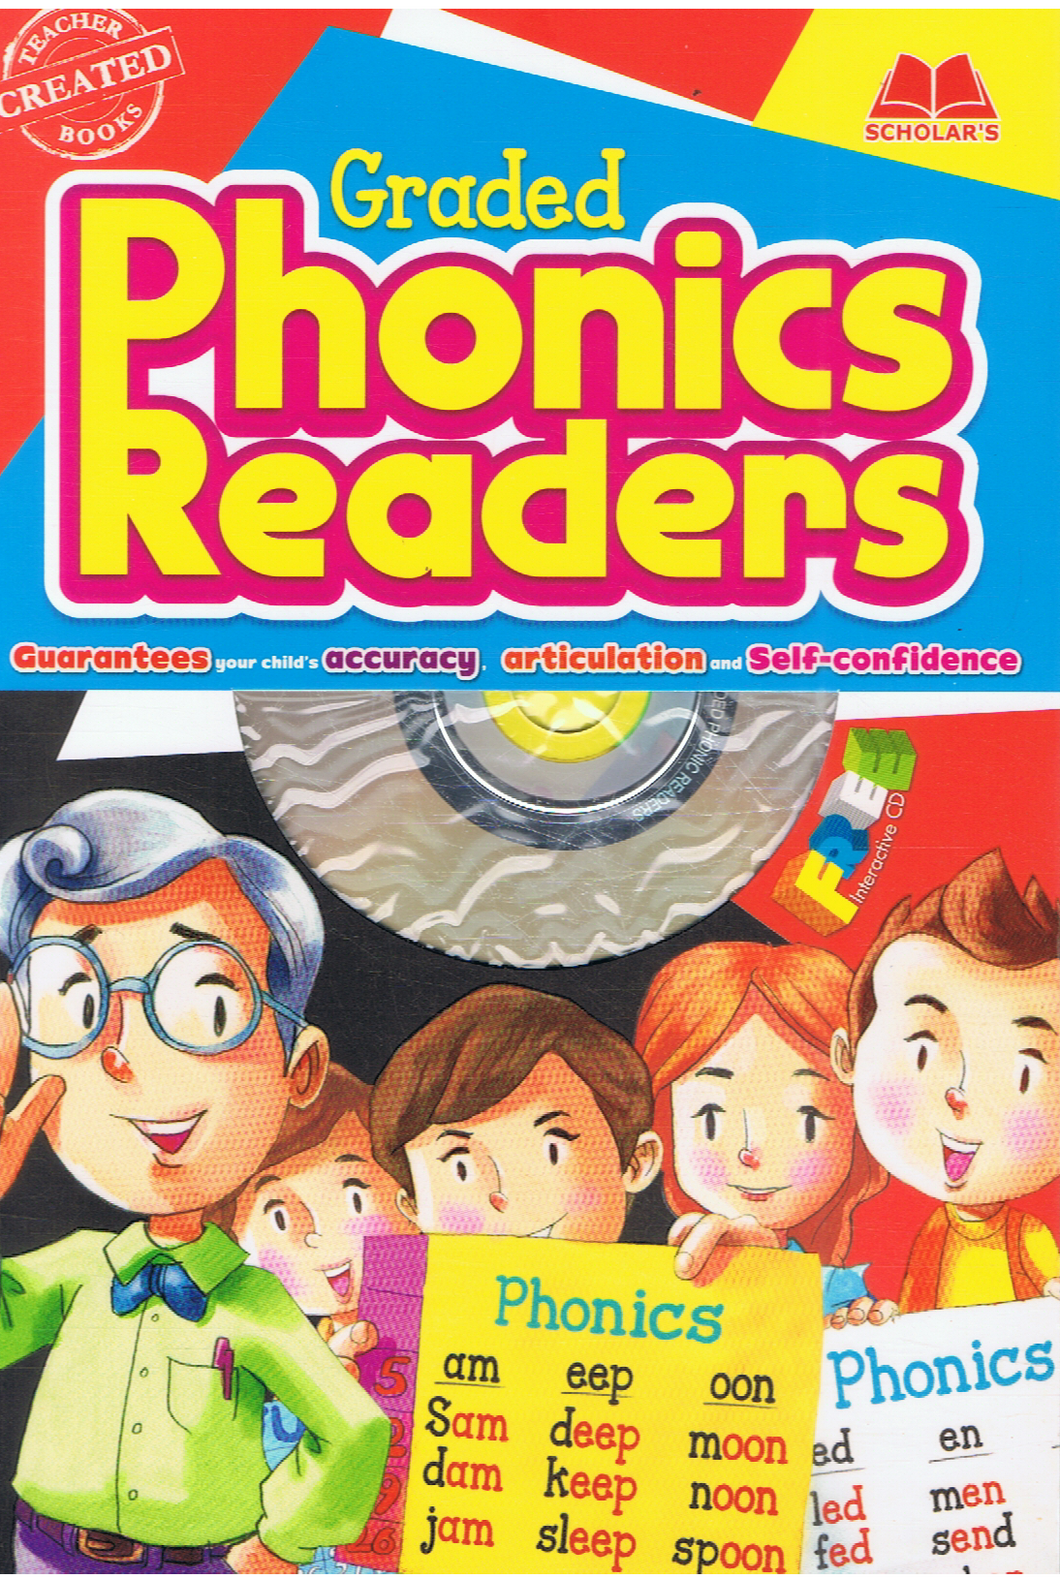 Graded Phonics Readers